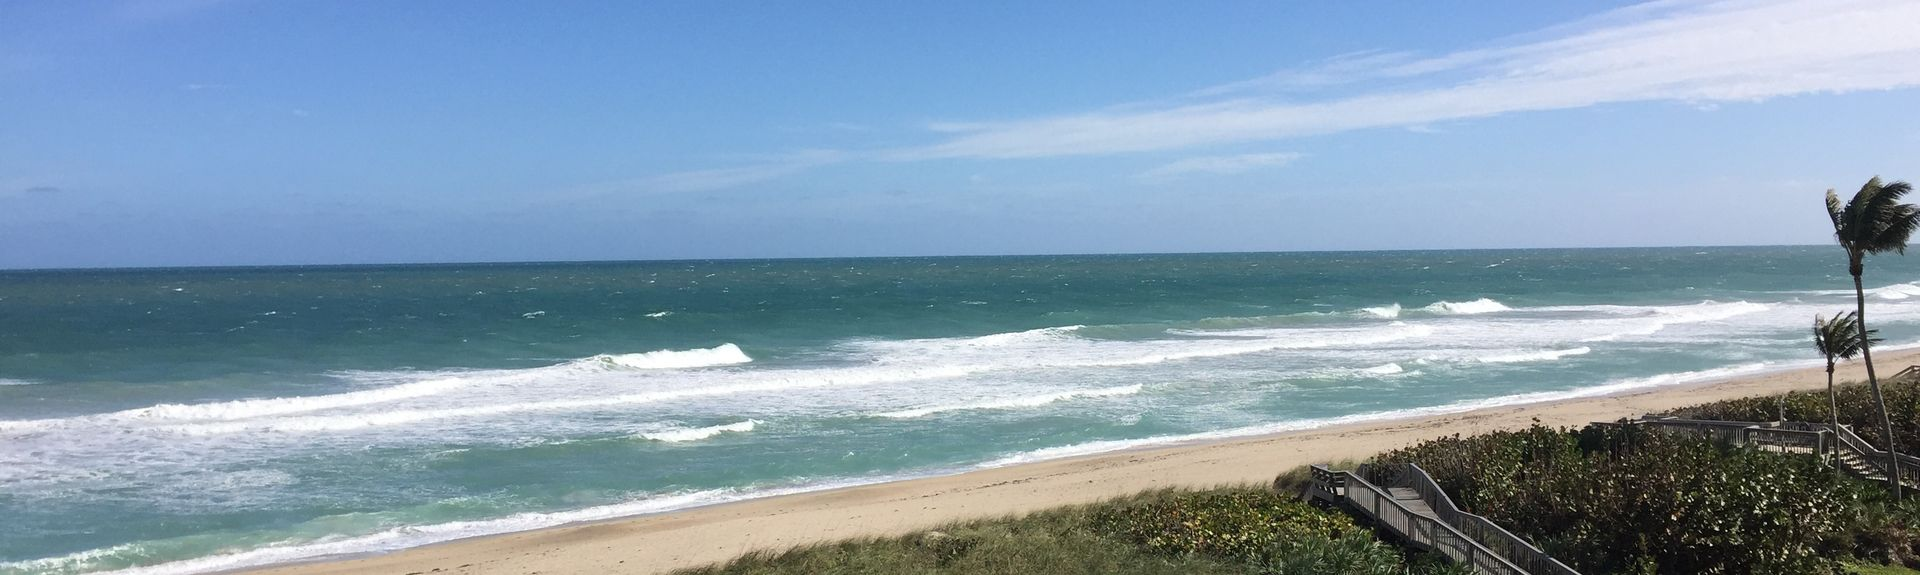 Herman's Bay Beach, Hutchinson Island South, Florida, United States